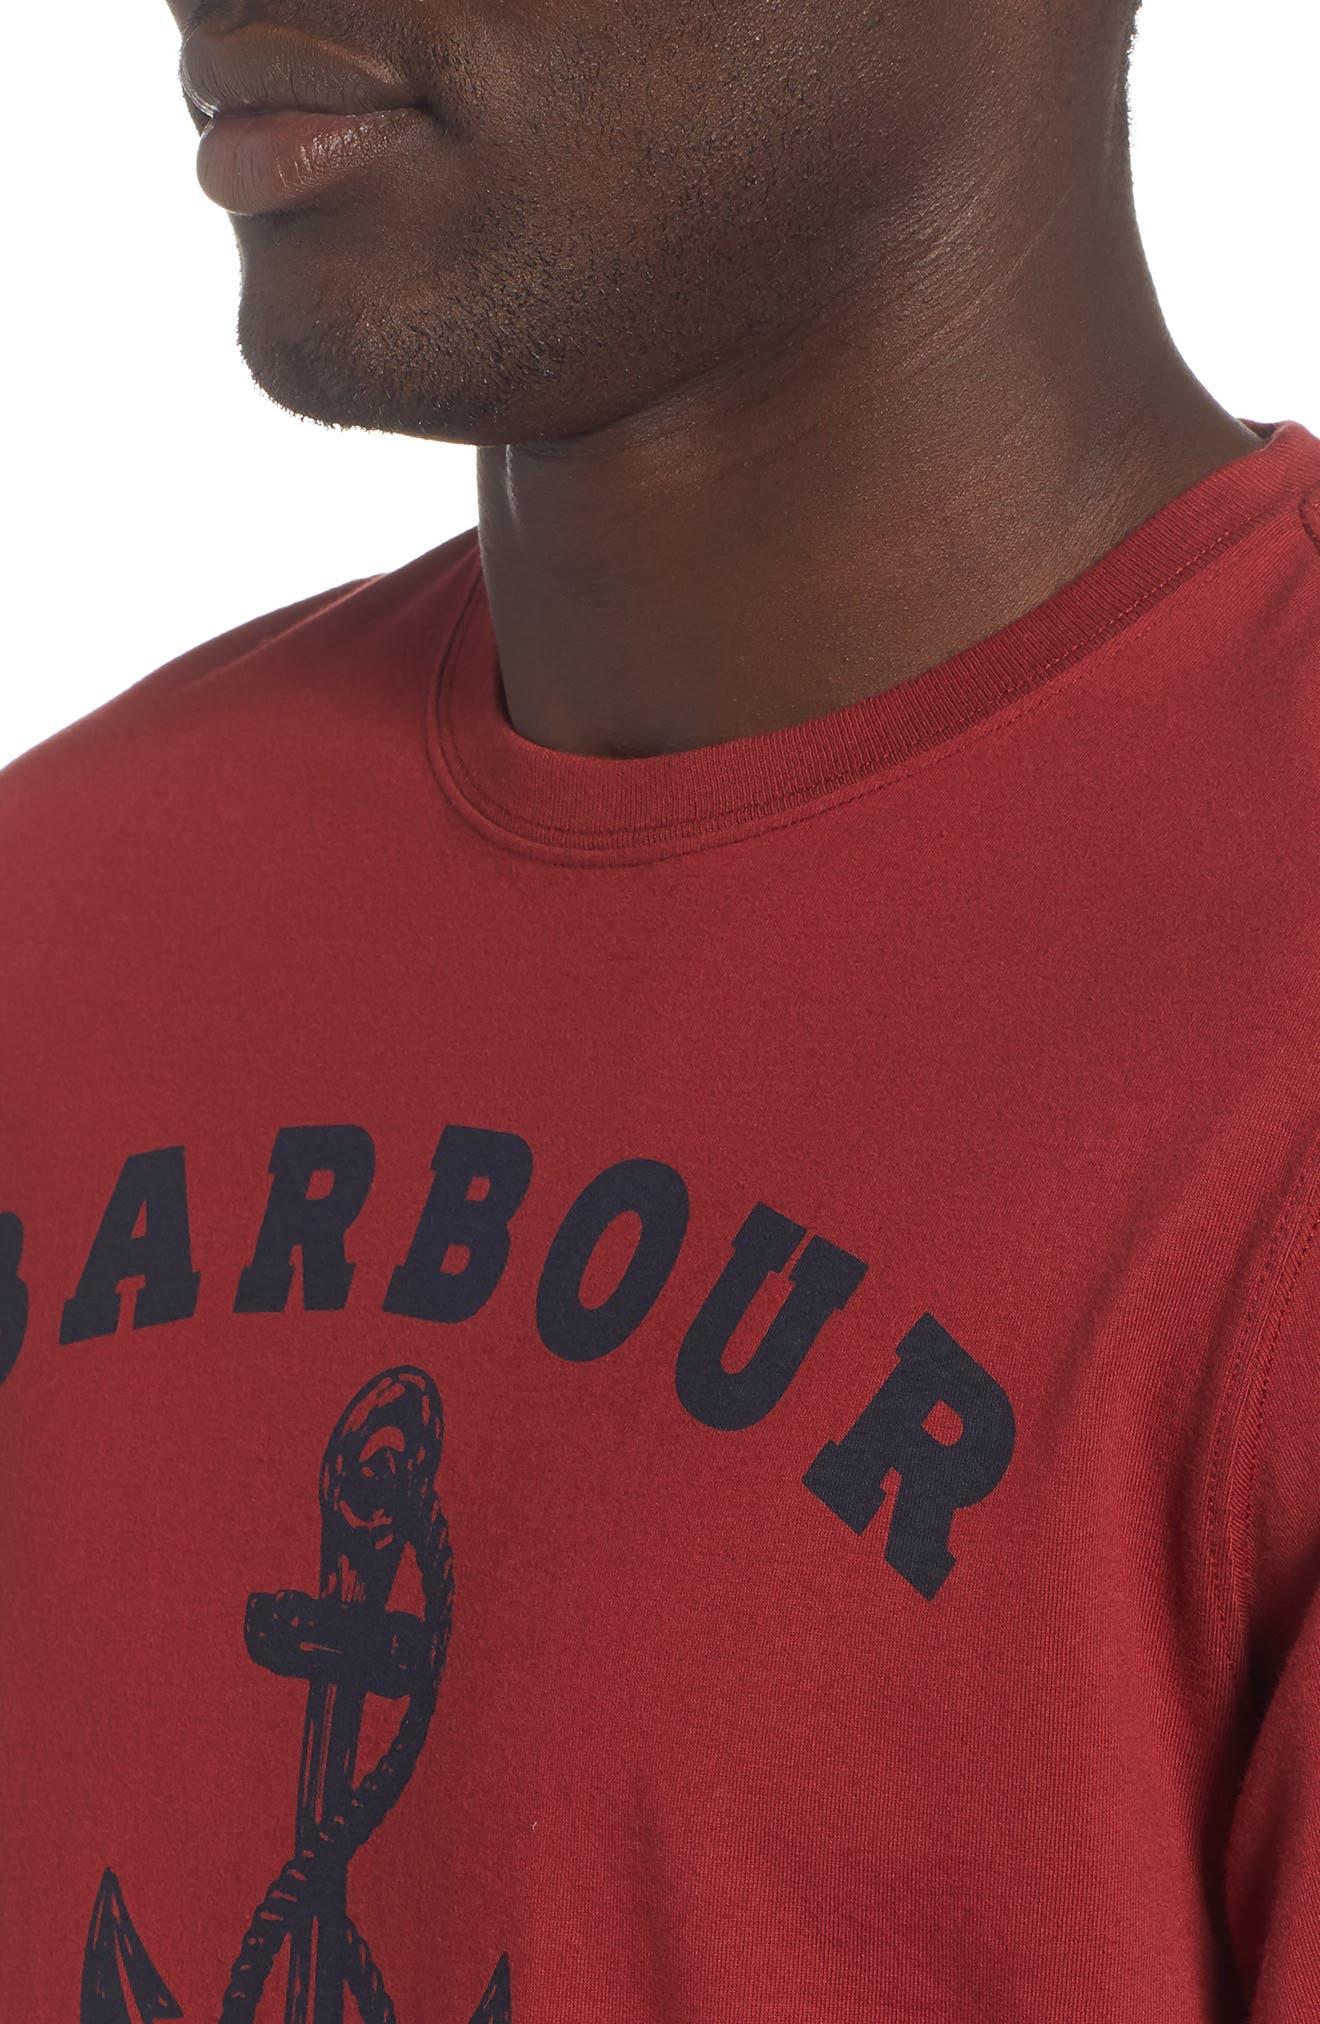 Anchor Graphic T-Shirt,                             Alternate thumbnail 4, color,